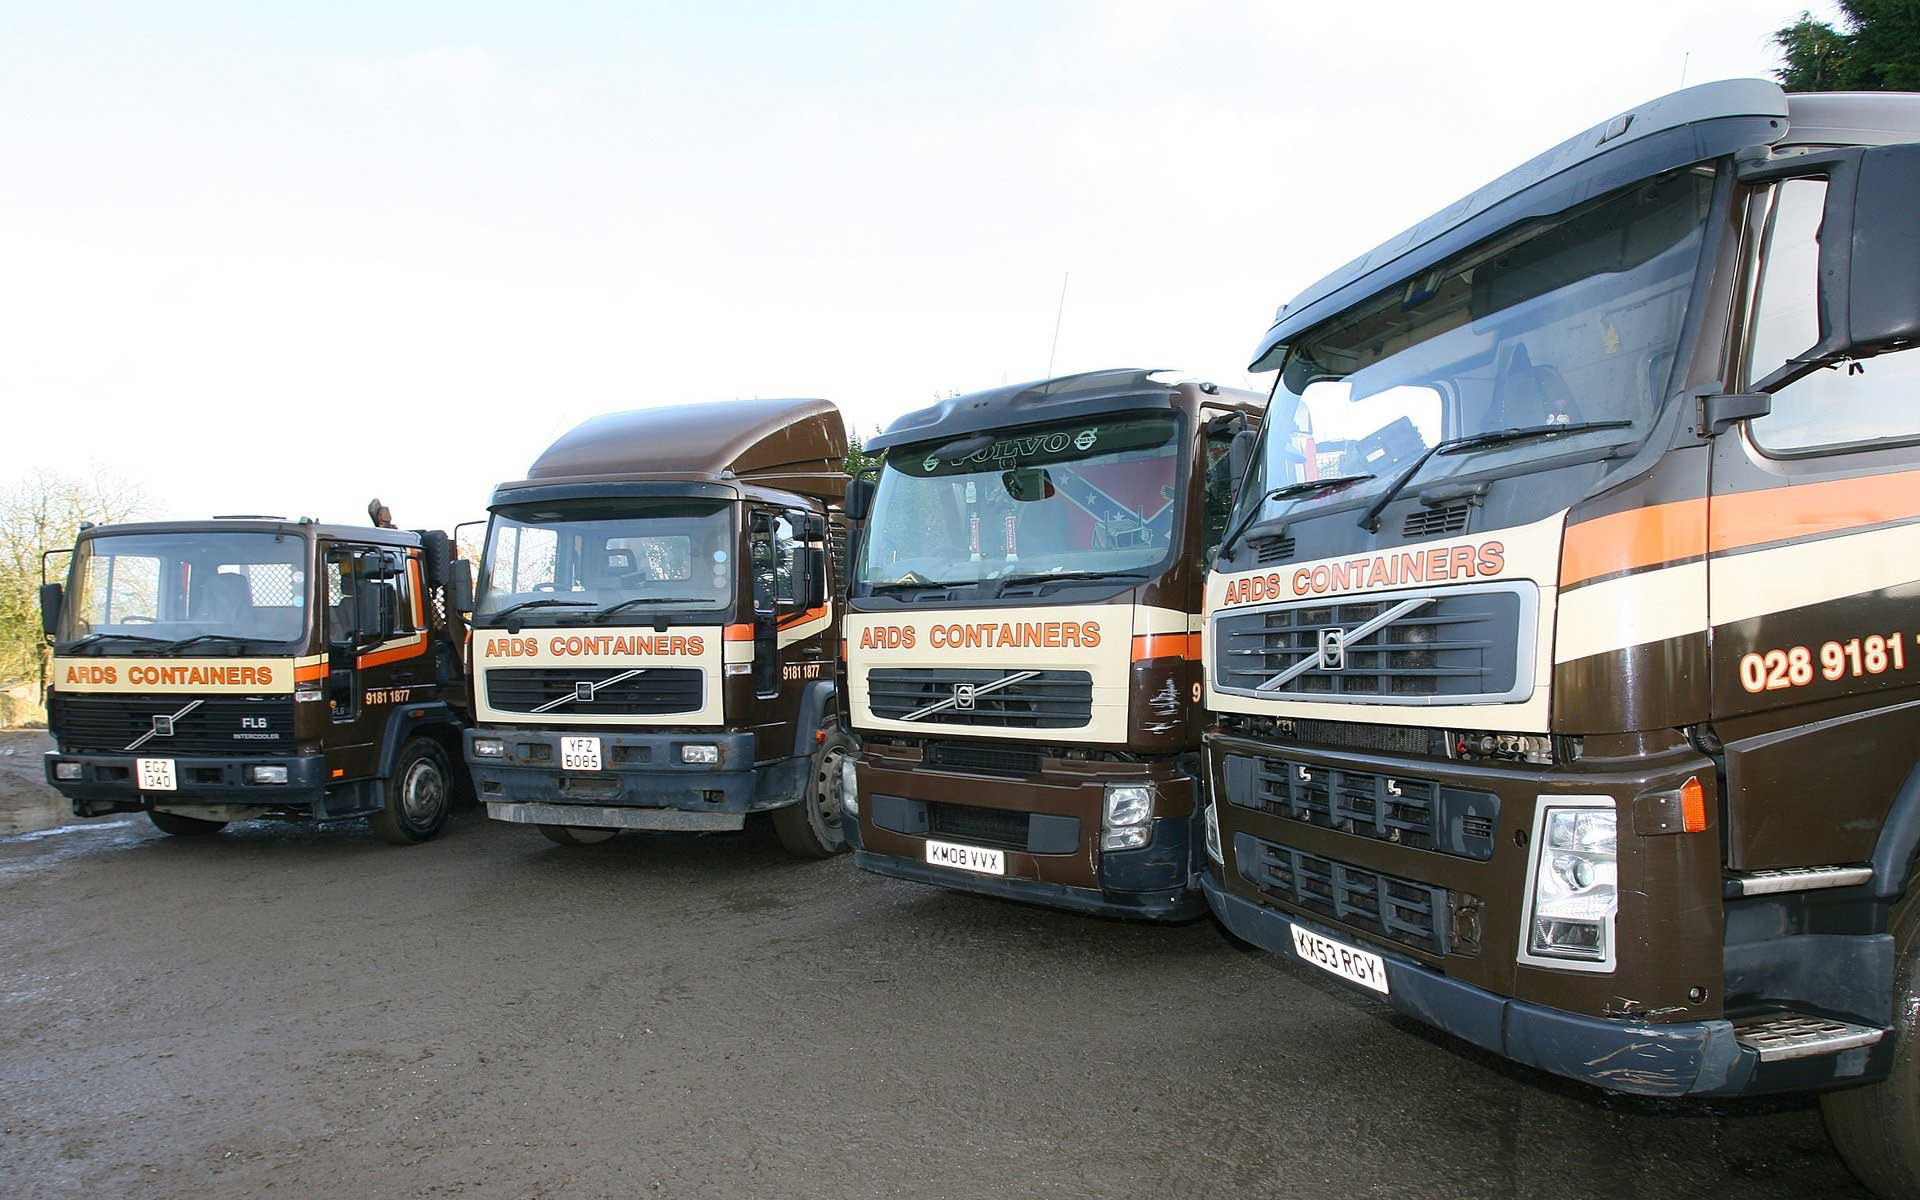 Ards containers trucks